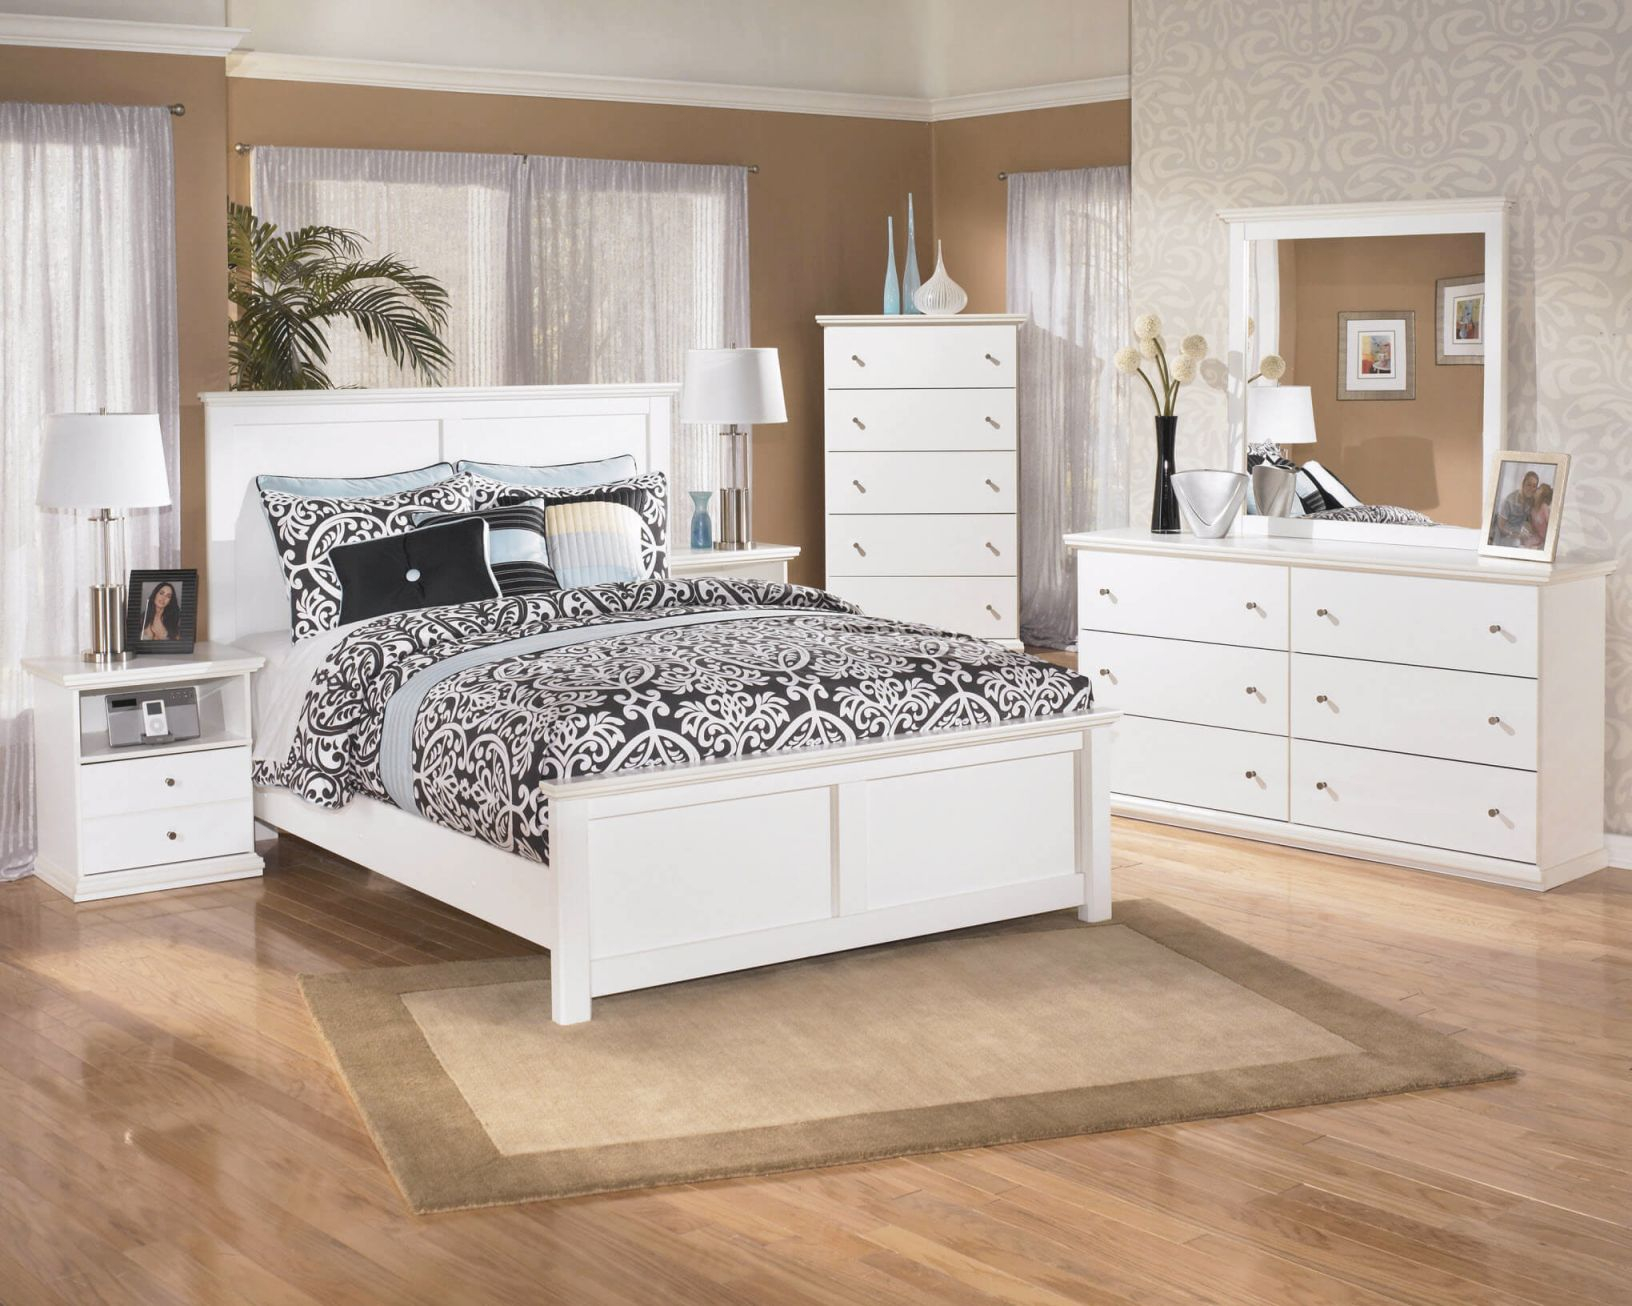 B139 Ashley Bostwick Shoals White Bedroom Set intended for Cheap White Bedroom Furniture Sets